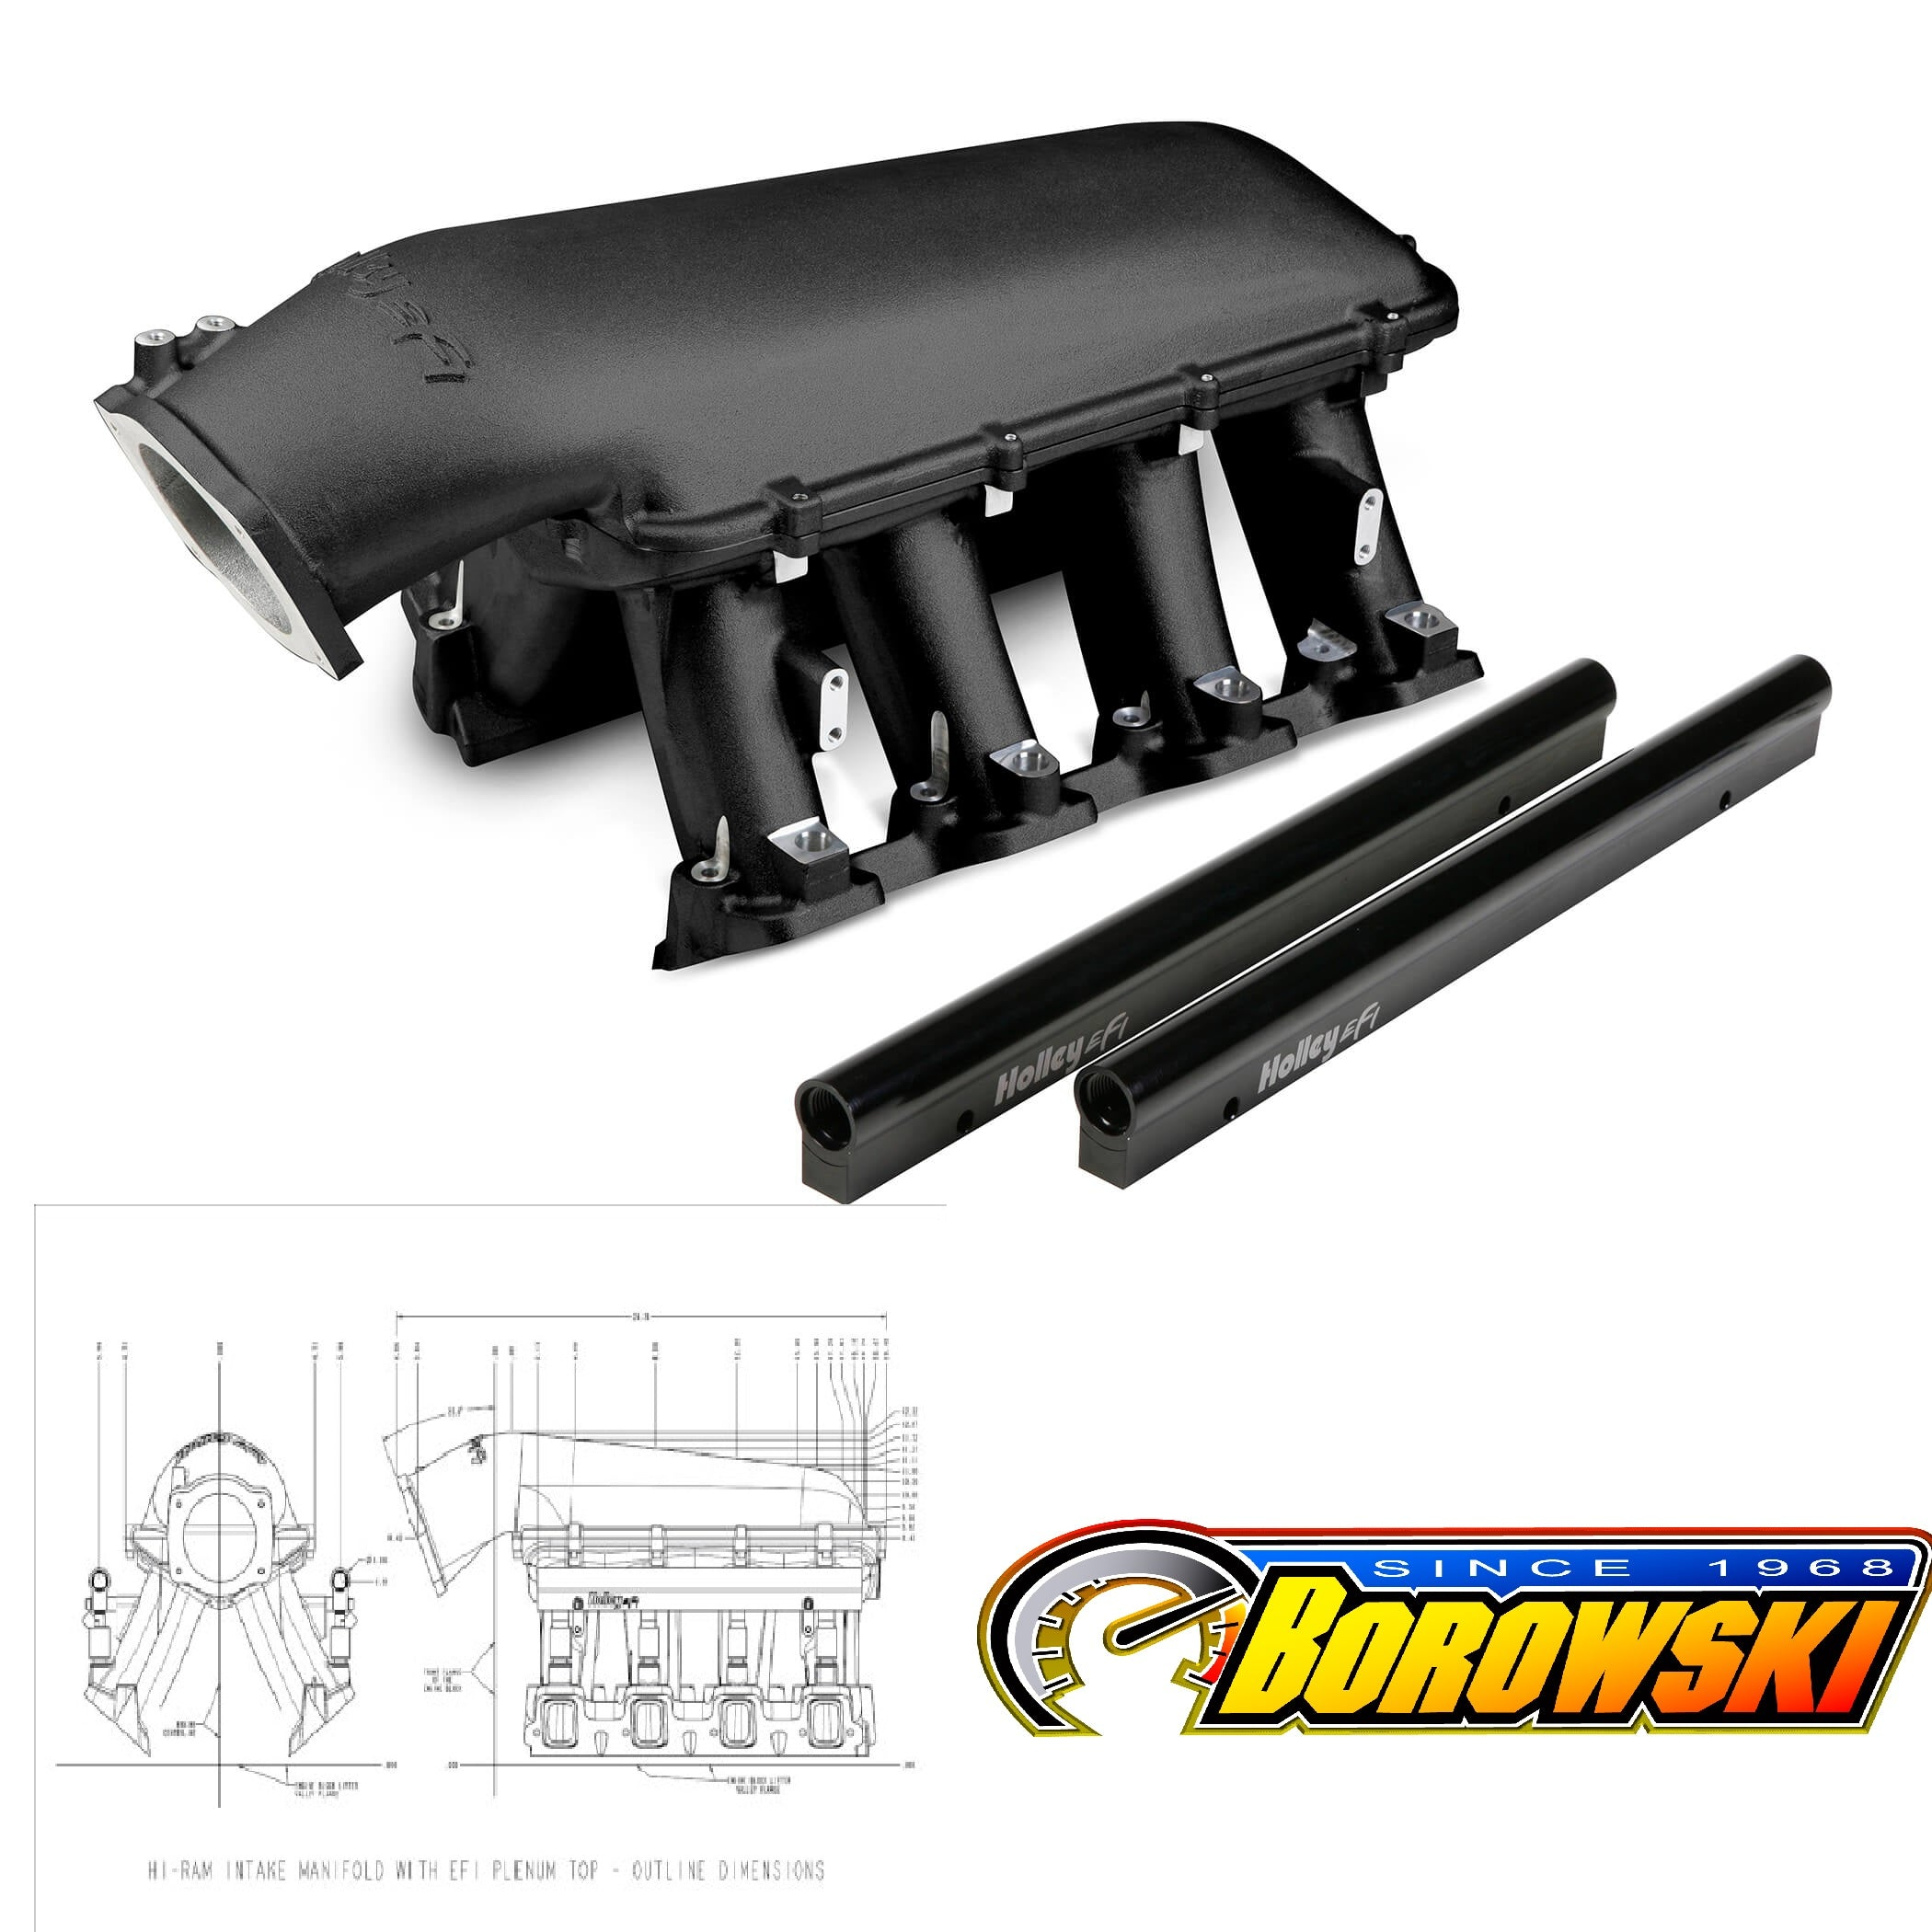 HOLLEY LS HI-RAM EFI MANIFOLD | Borowski Race Engines